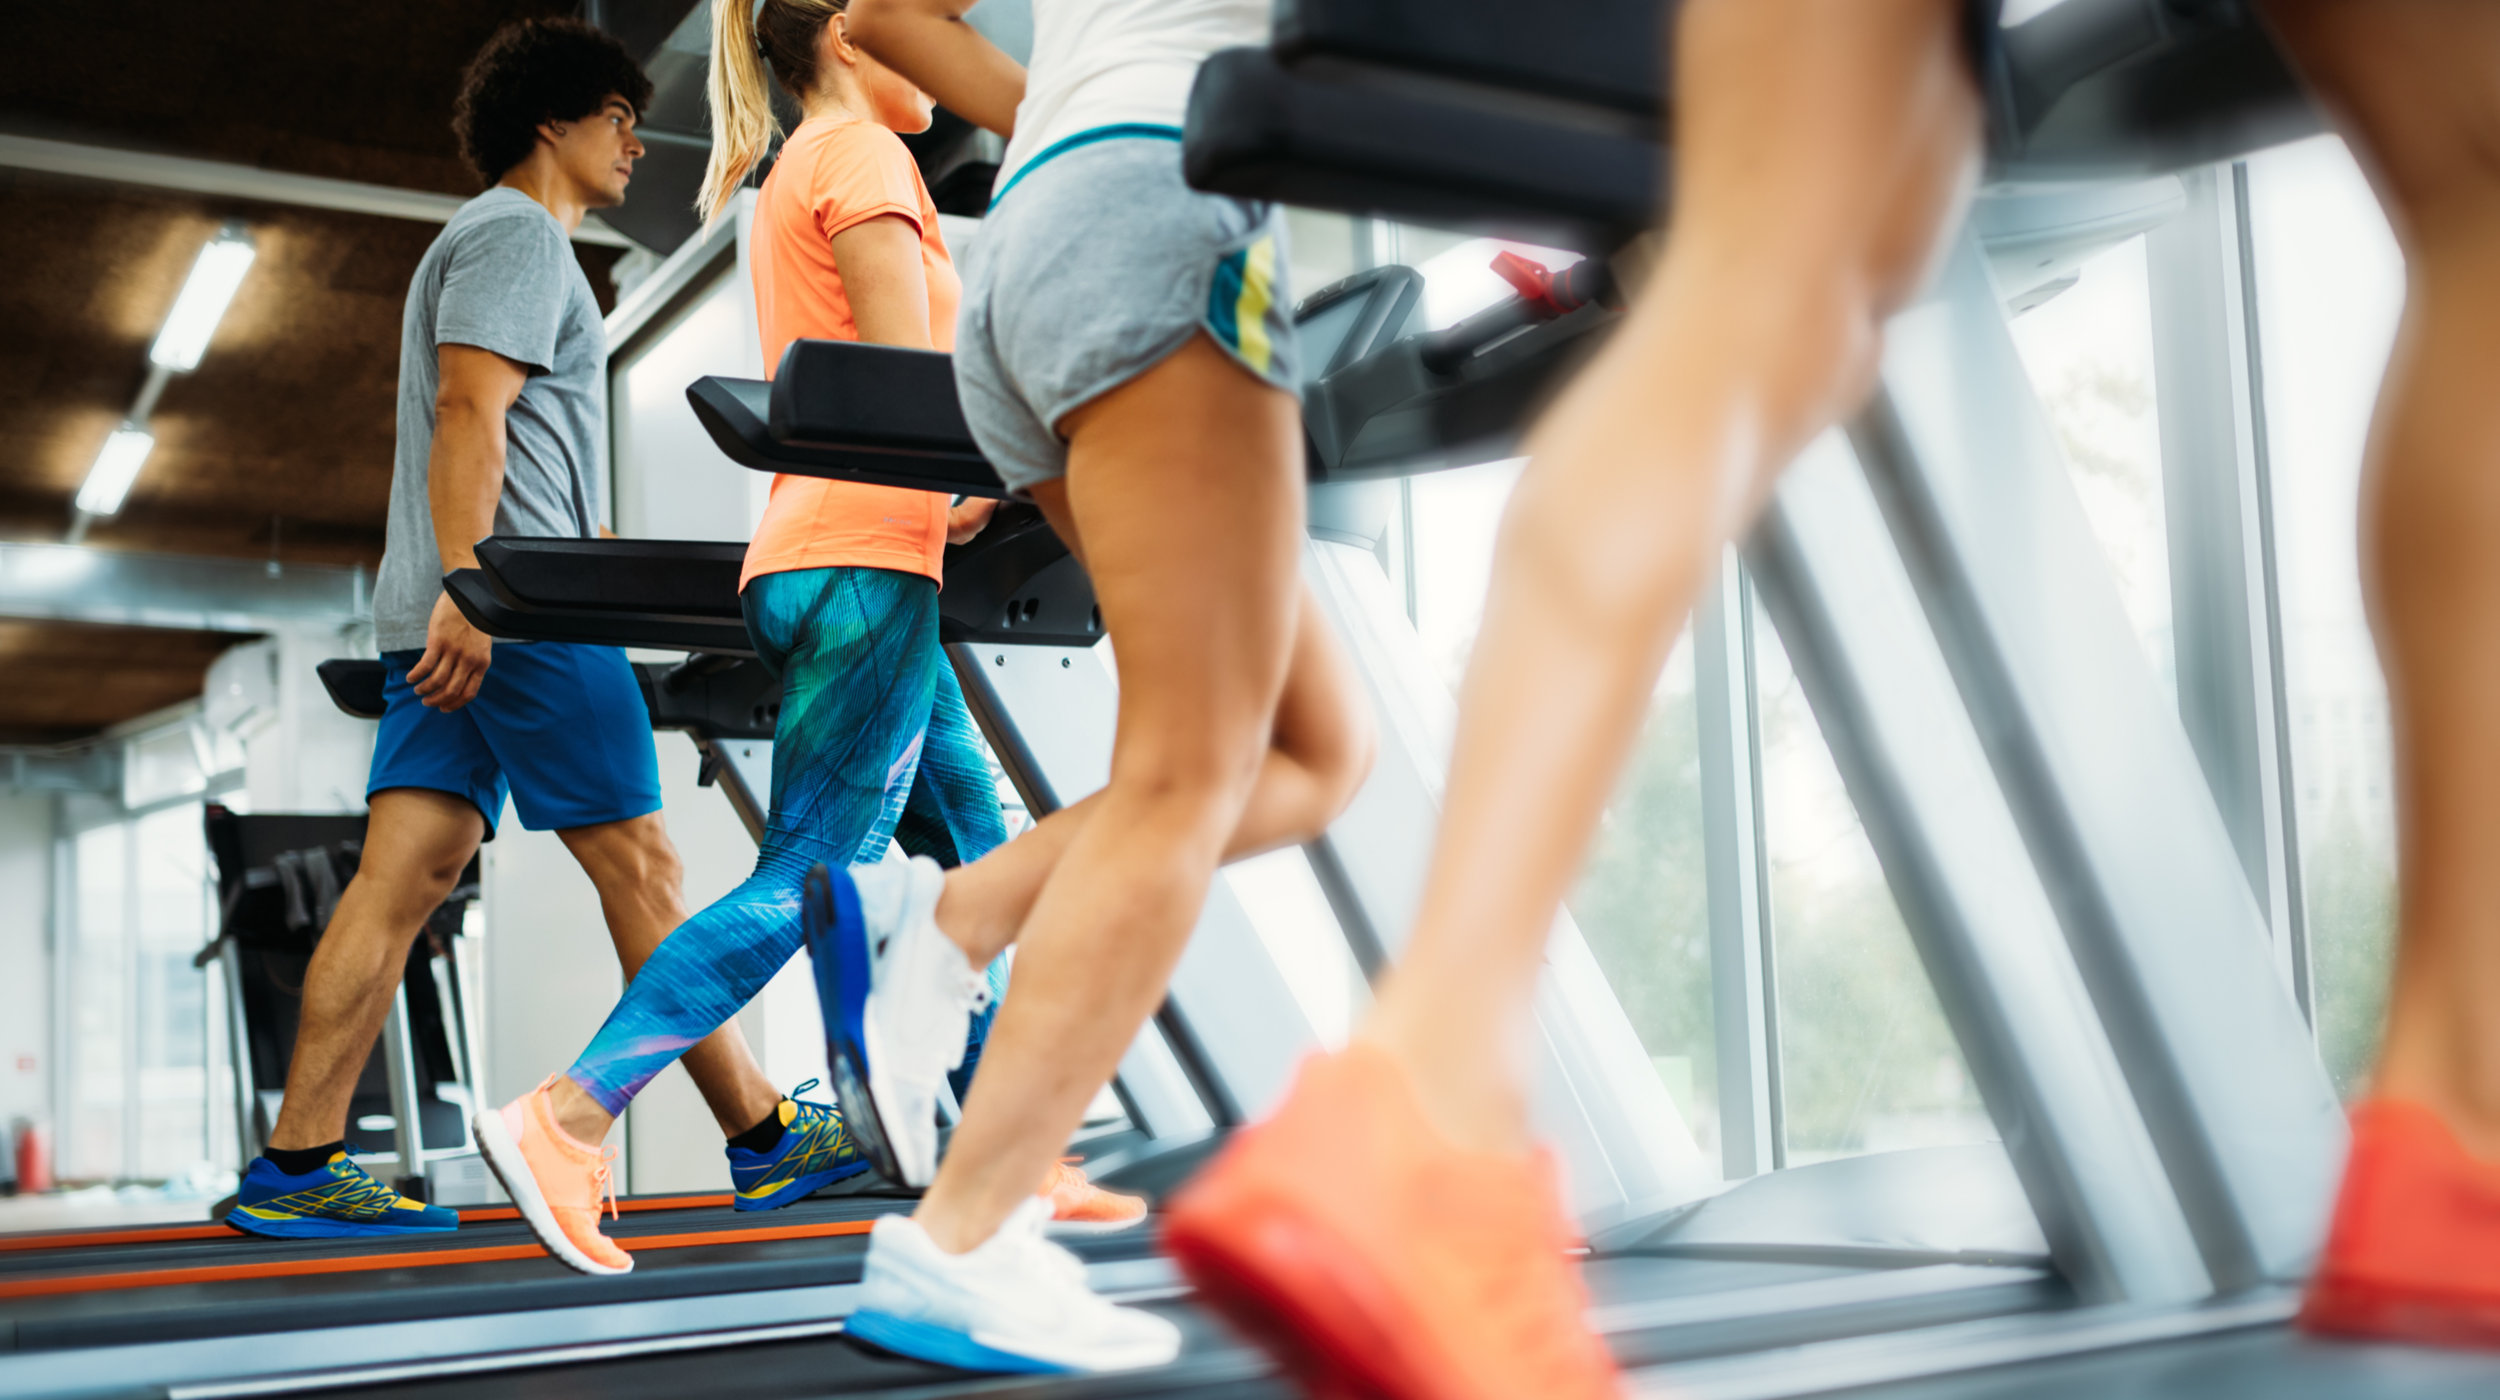 Are There Negative Side Effects of Doing Too Much Cardio?